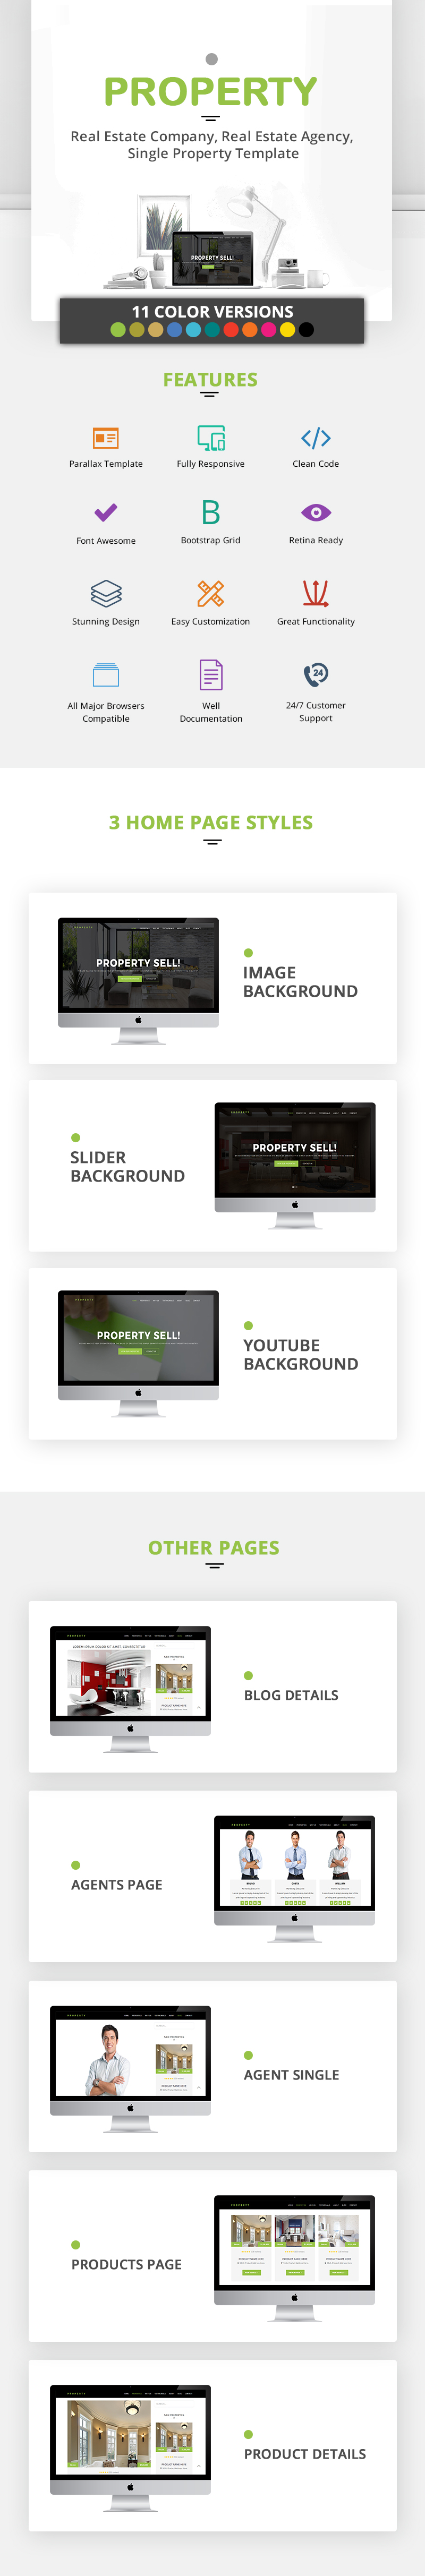 property-banner